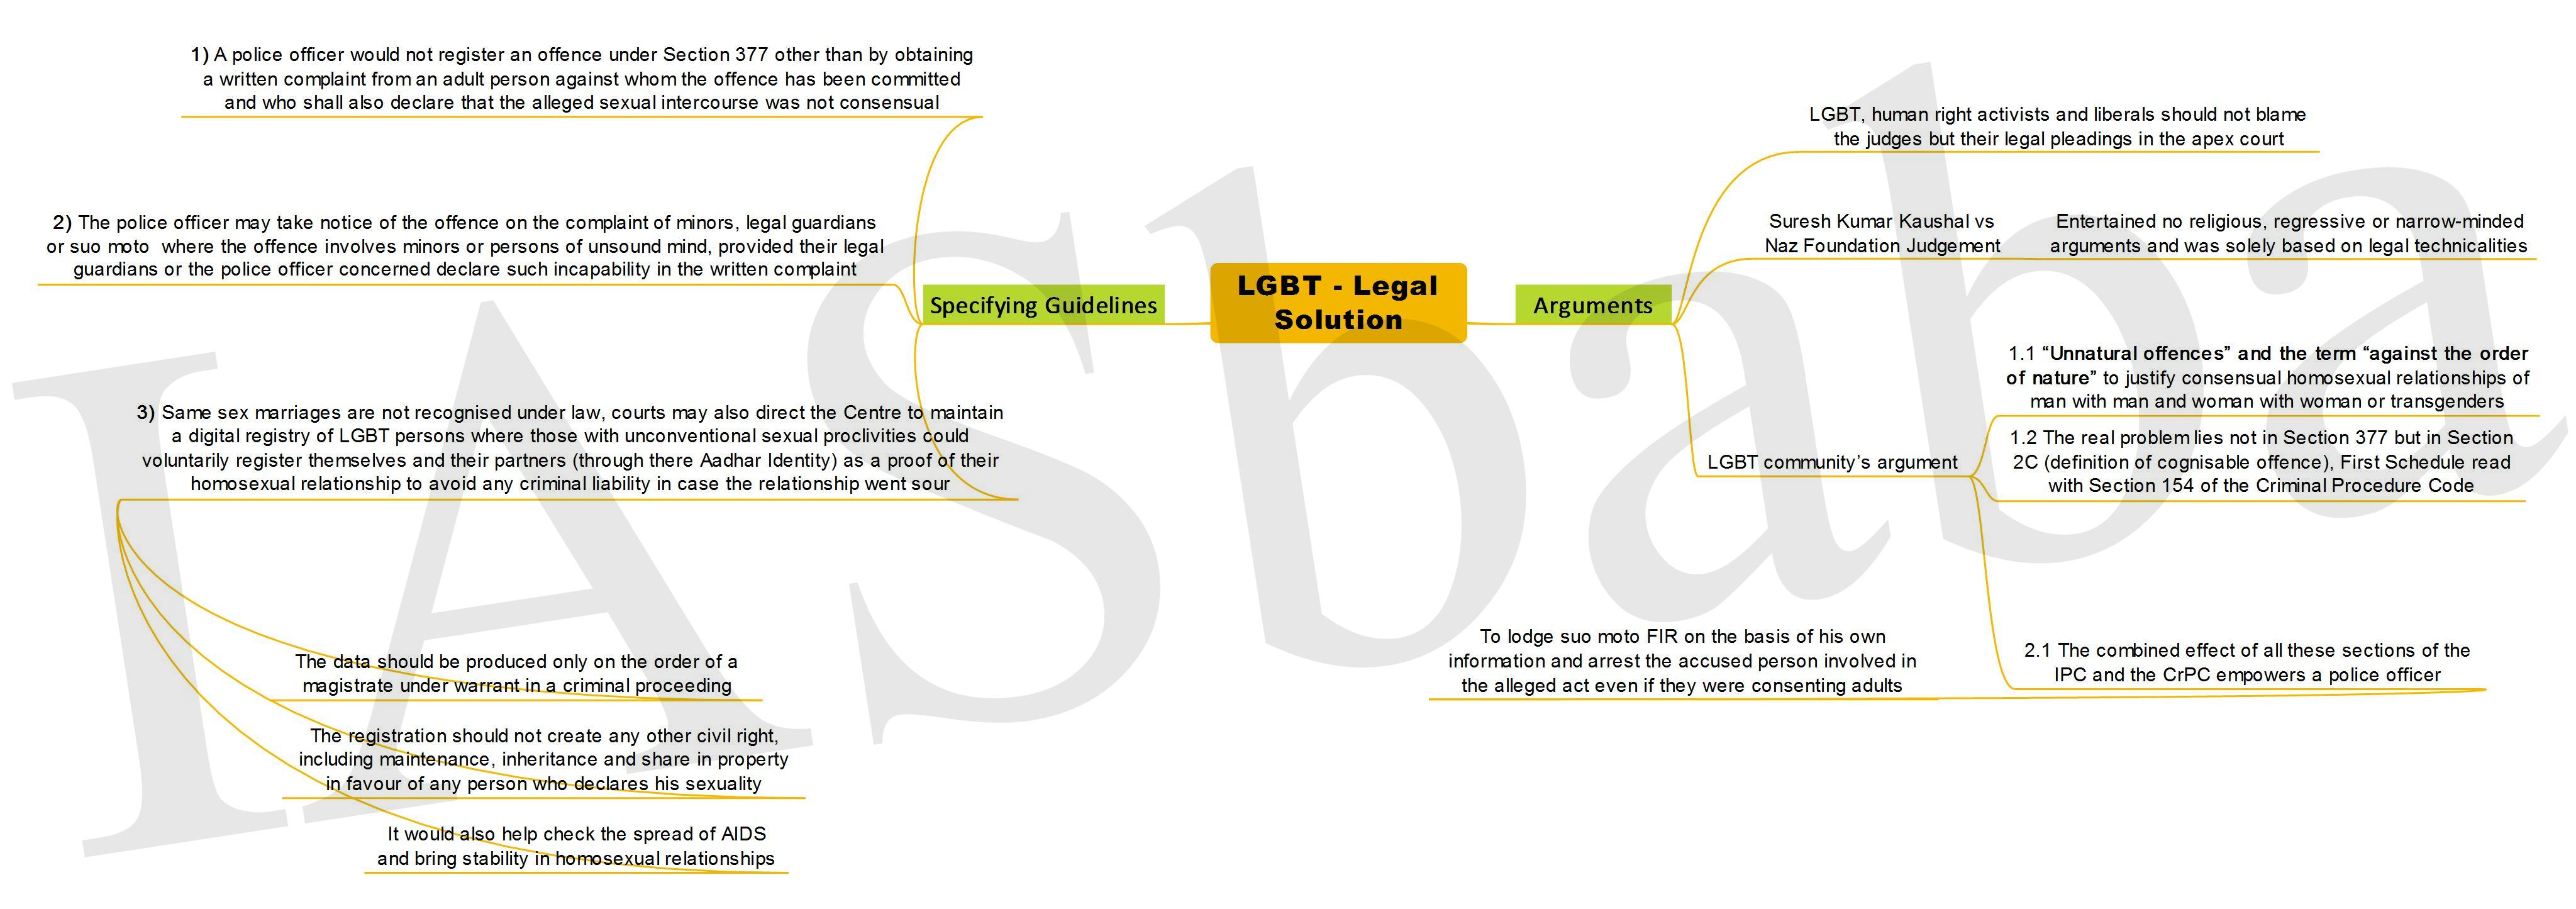 LGBT Legal Solution-IASbaba